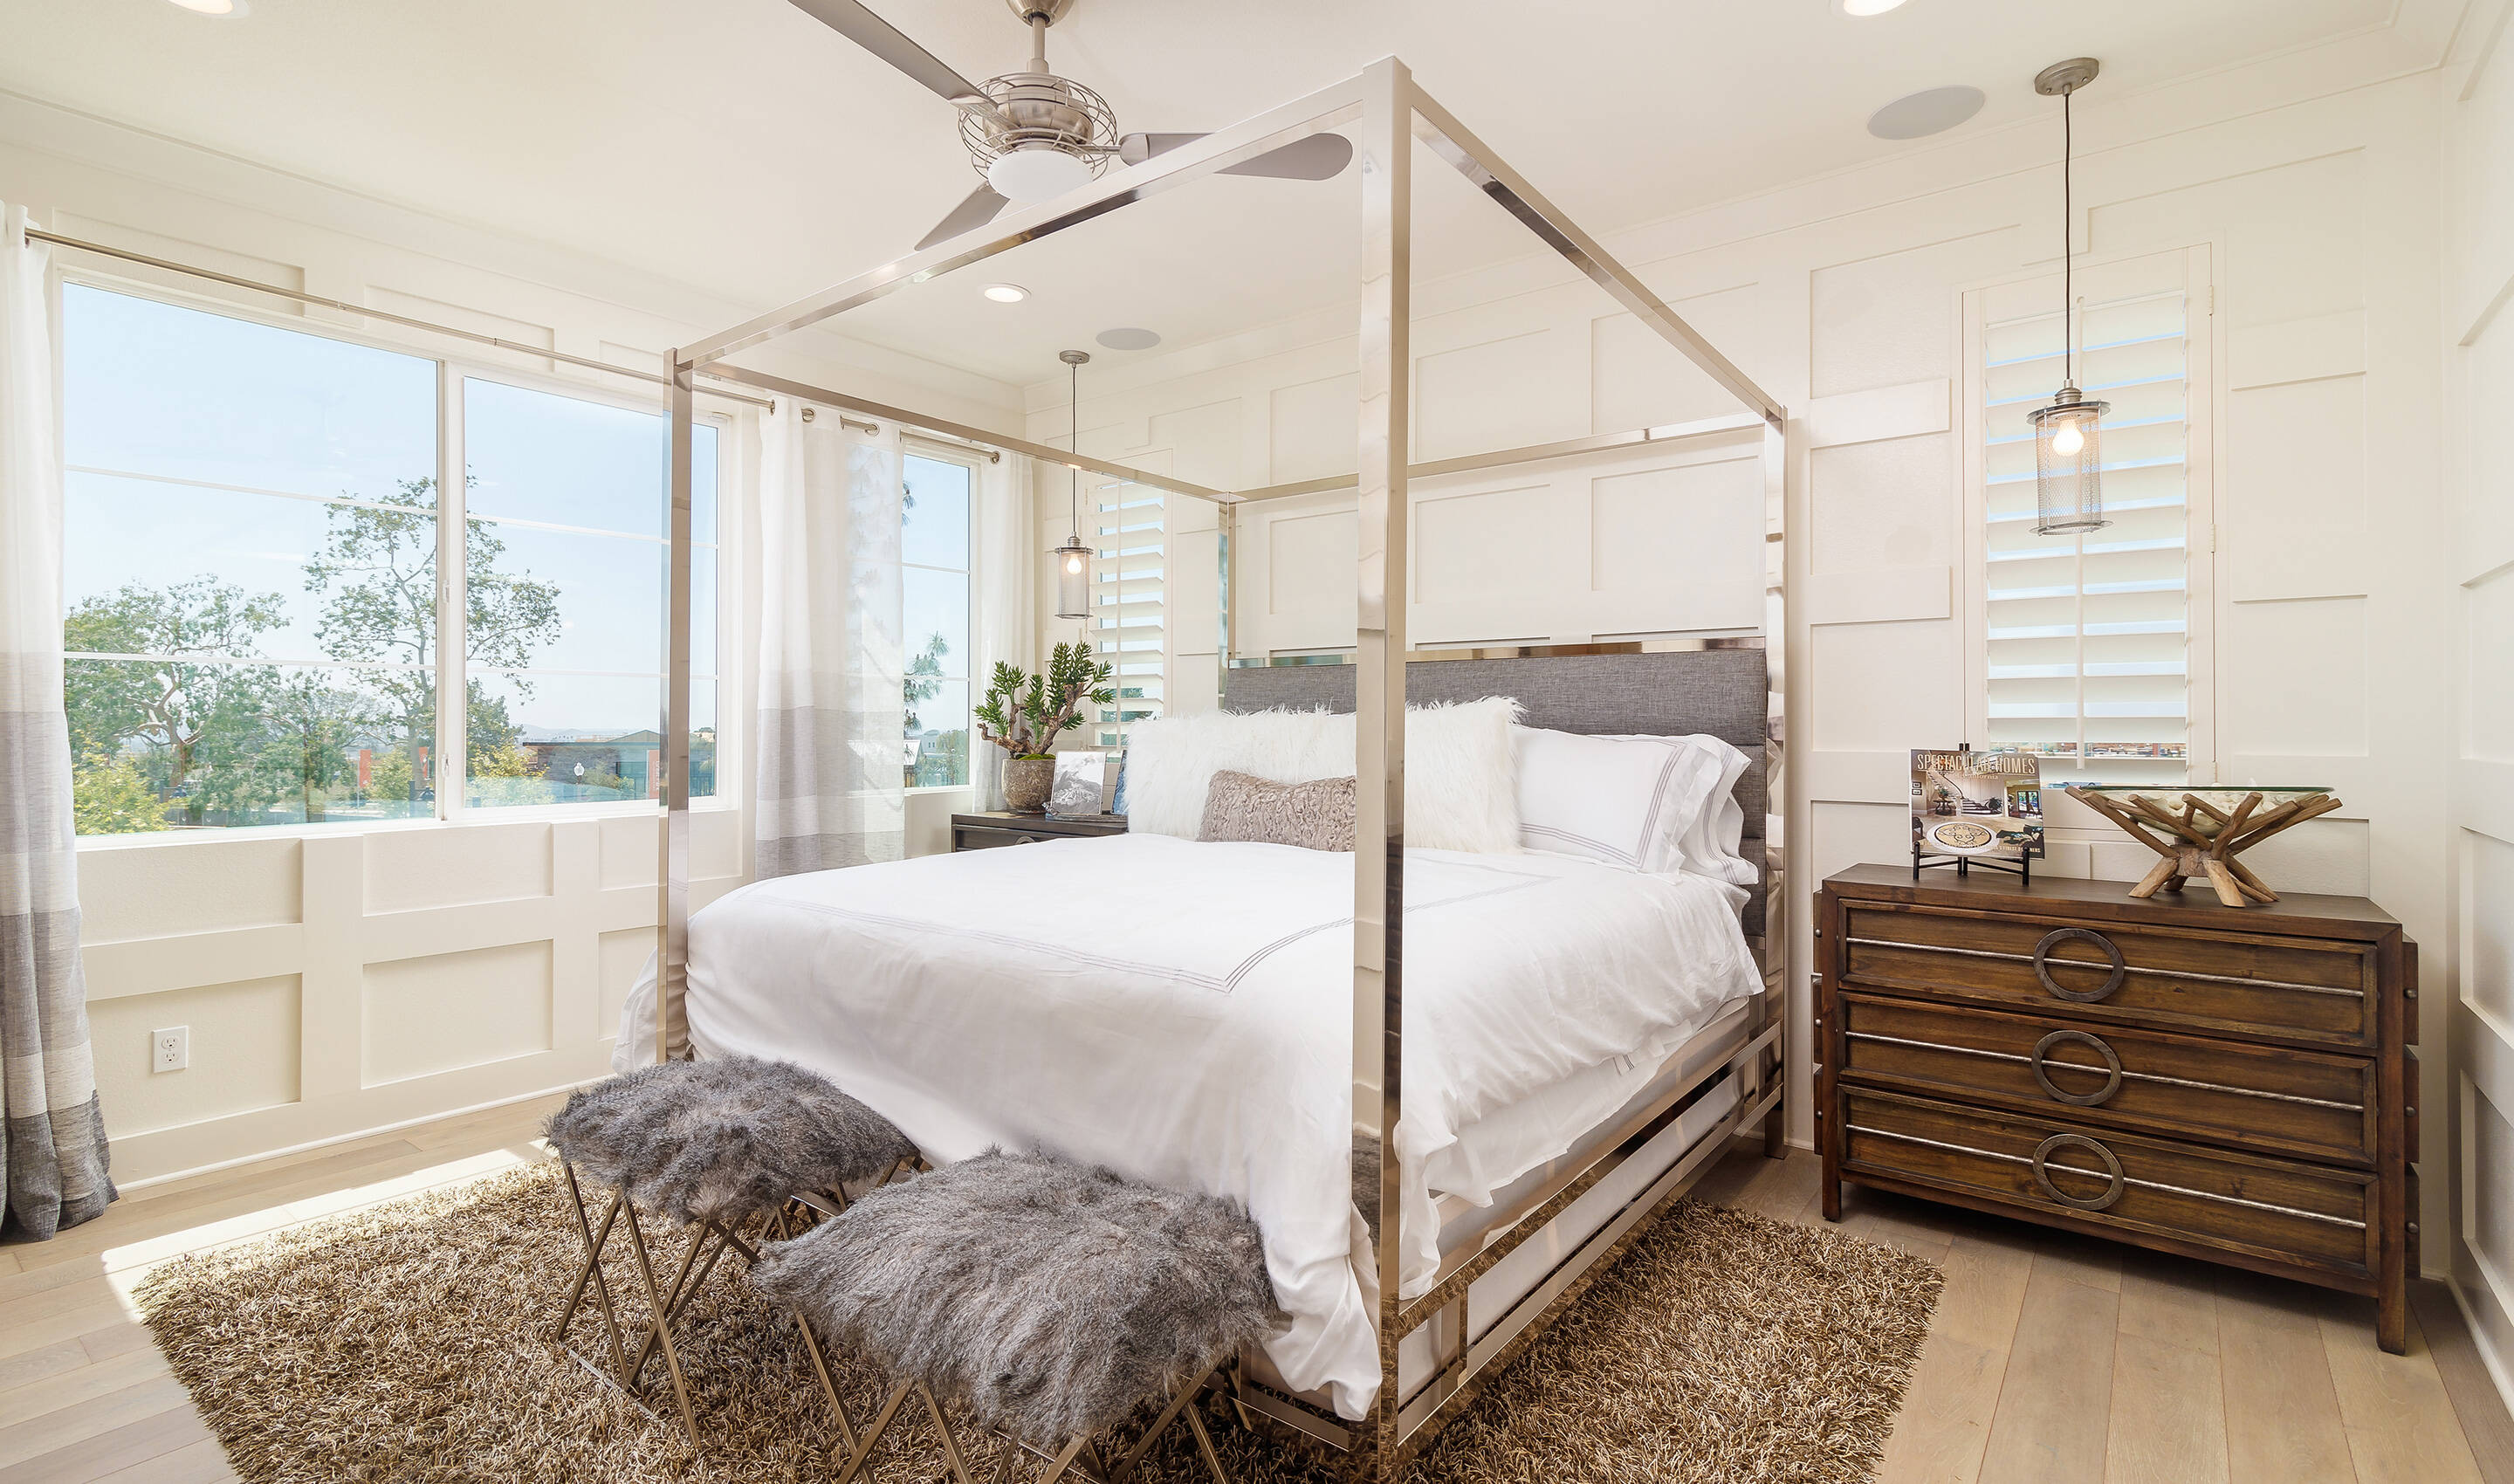 waverly-owners-suite-deco-at-cadence-park-new-homes-irvine-ca